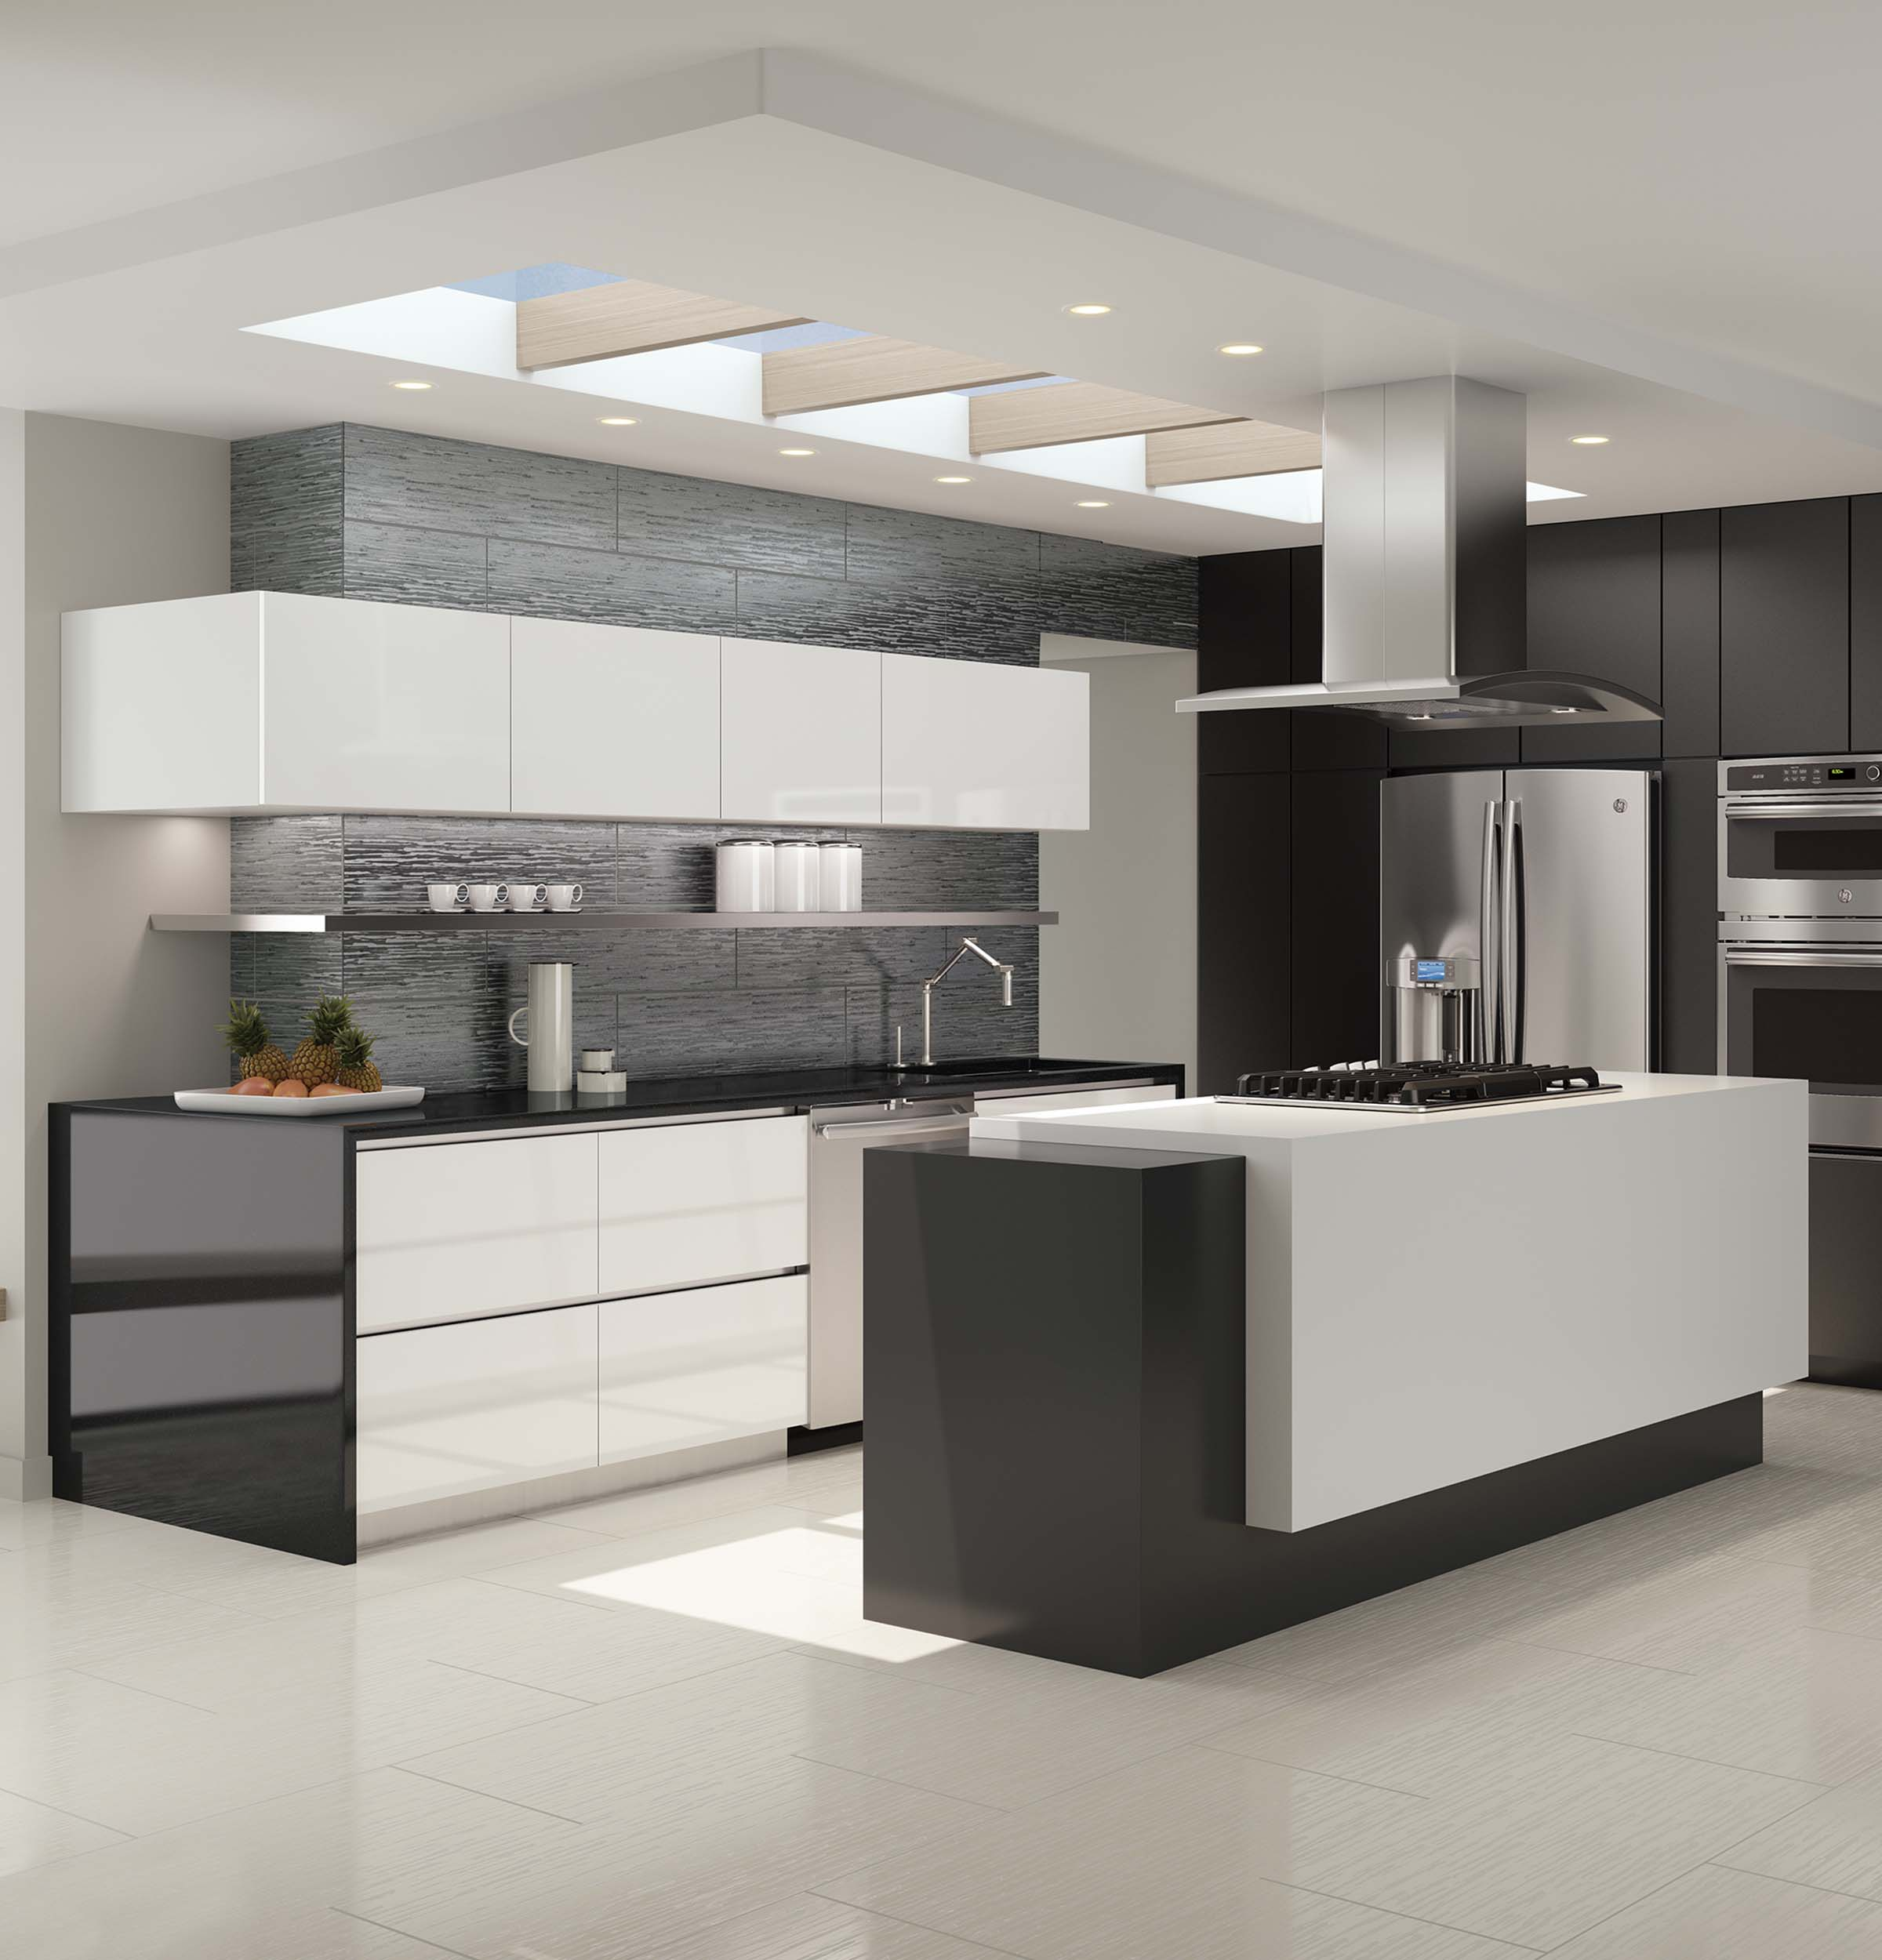 Model: PT9800SHSS | Profile GE Profile™ 30 in. Combination Double Wall Oven with Convection and Advantium® Technology